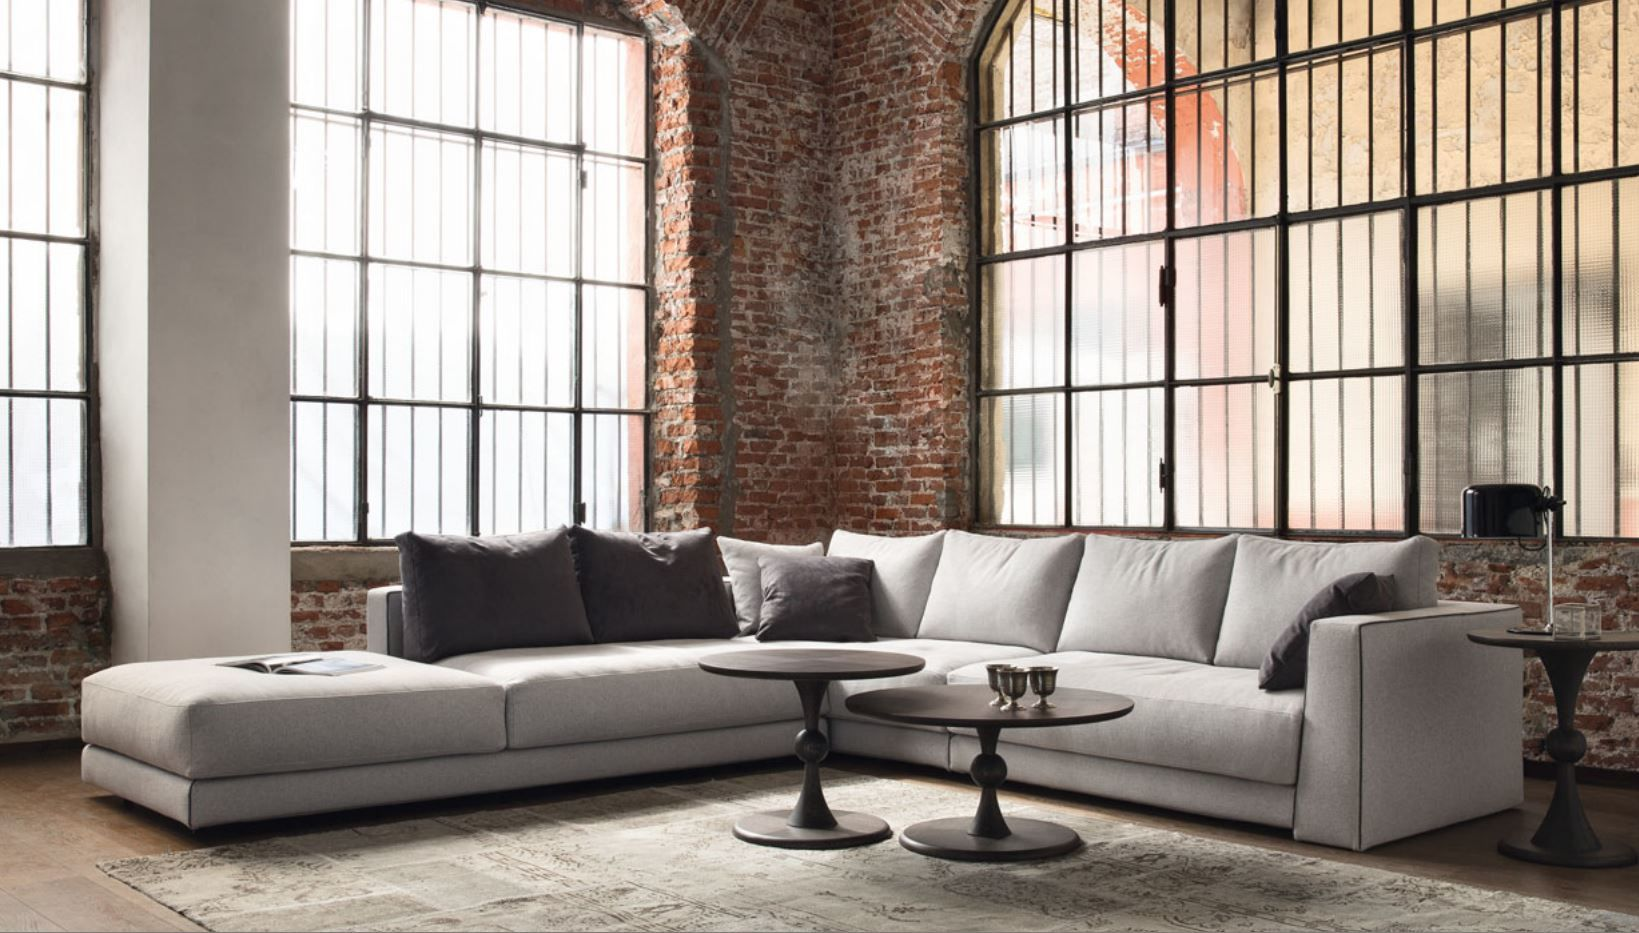 fancy grey leather sectional sofa inspiration-Best Grey Leather Sectional sofa Collection